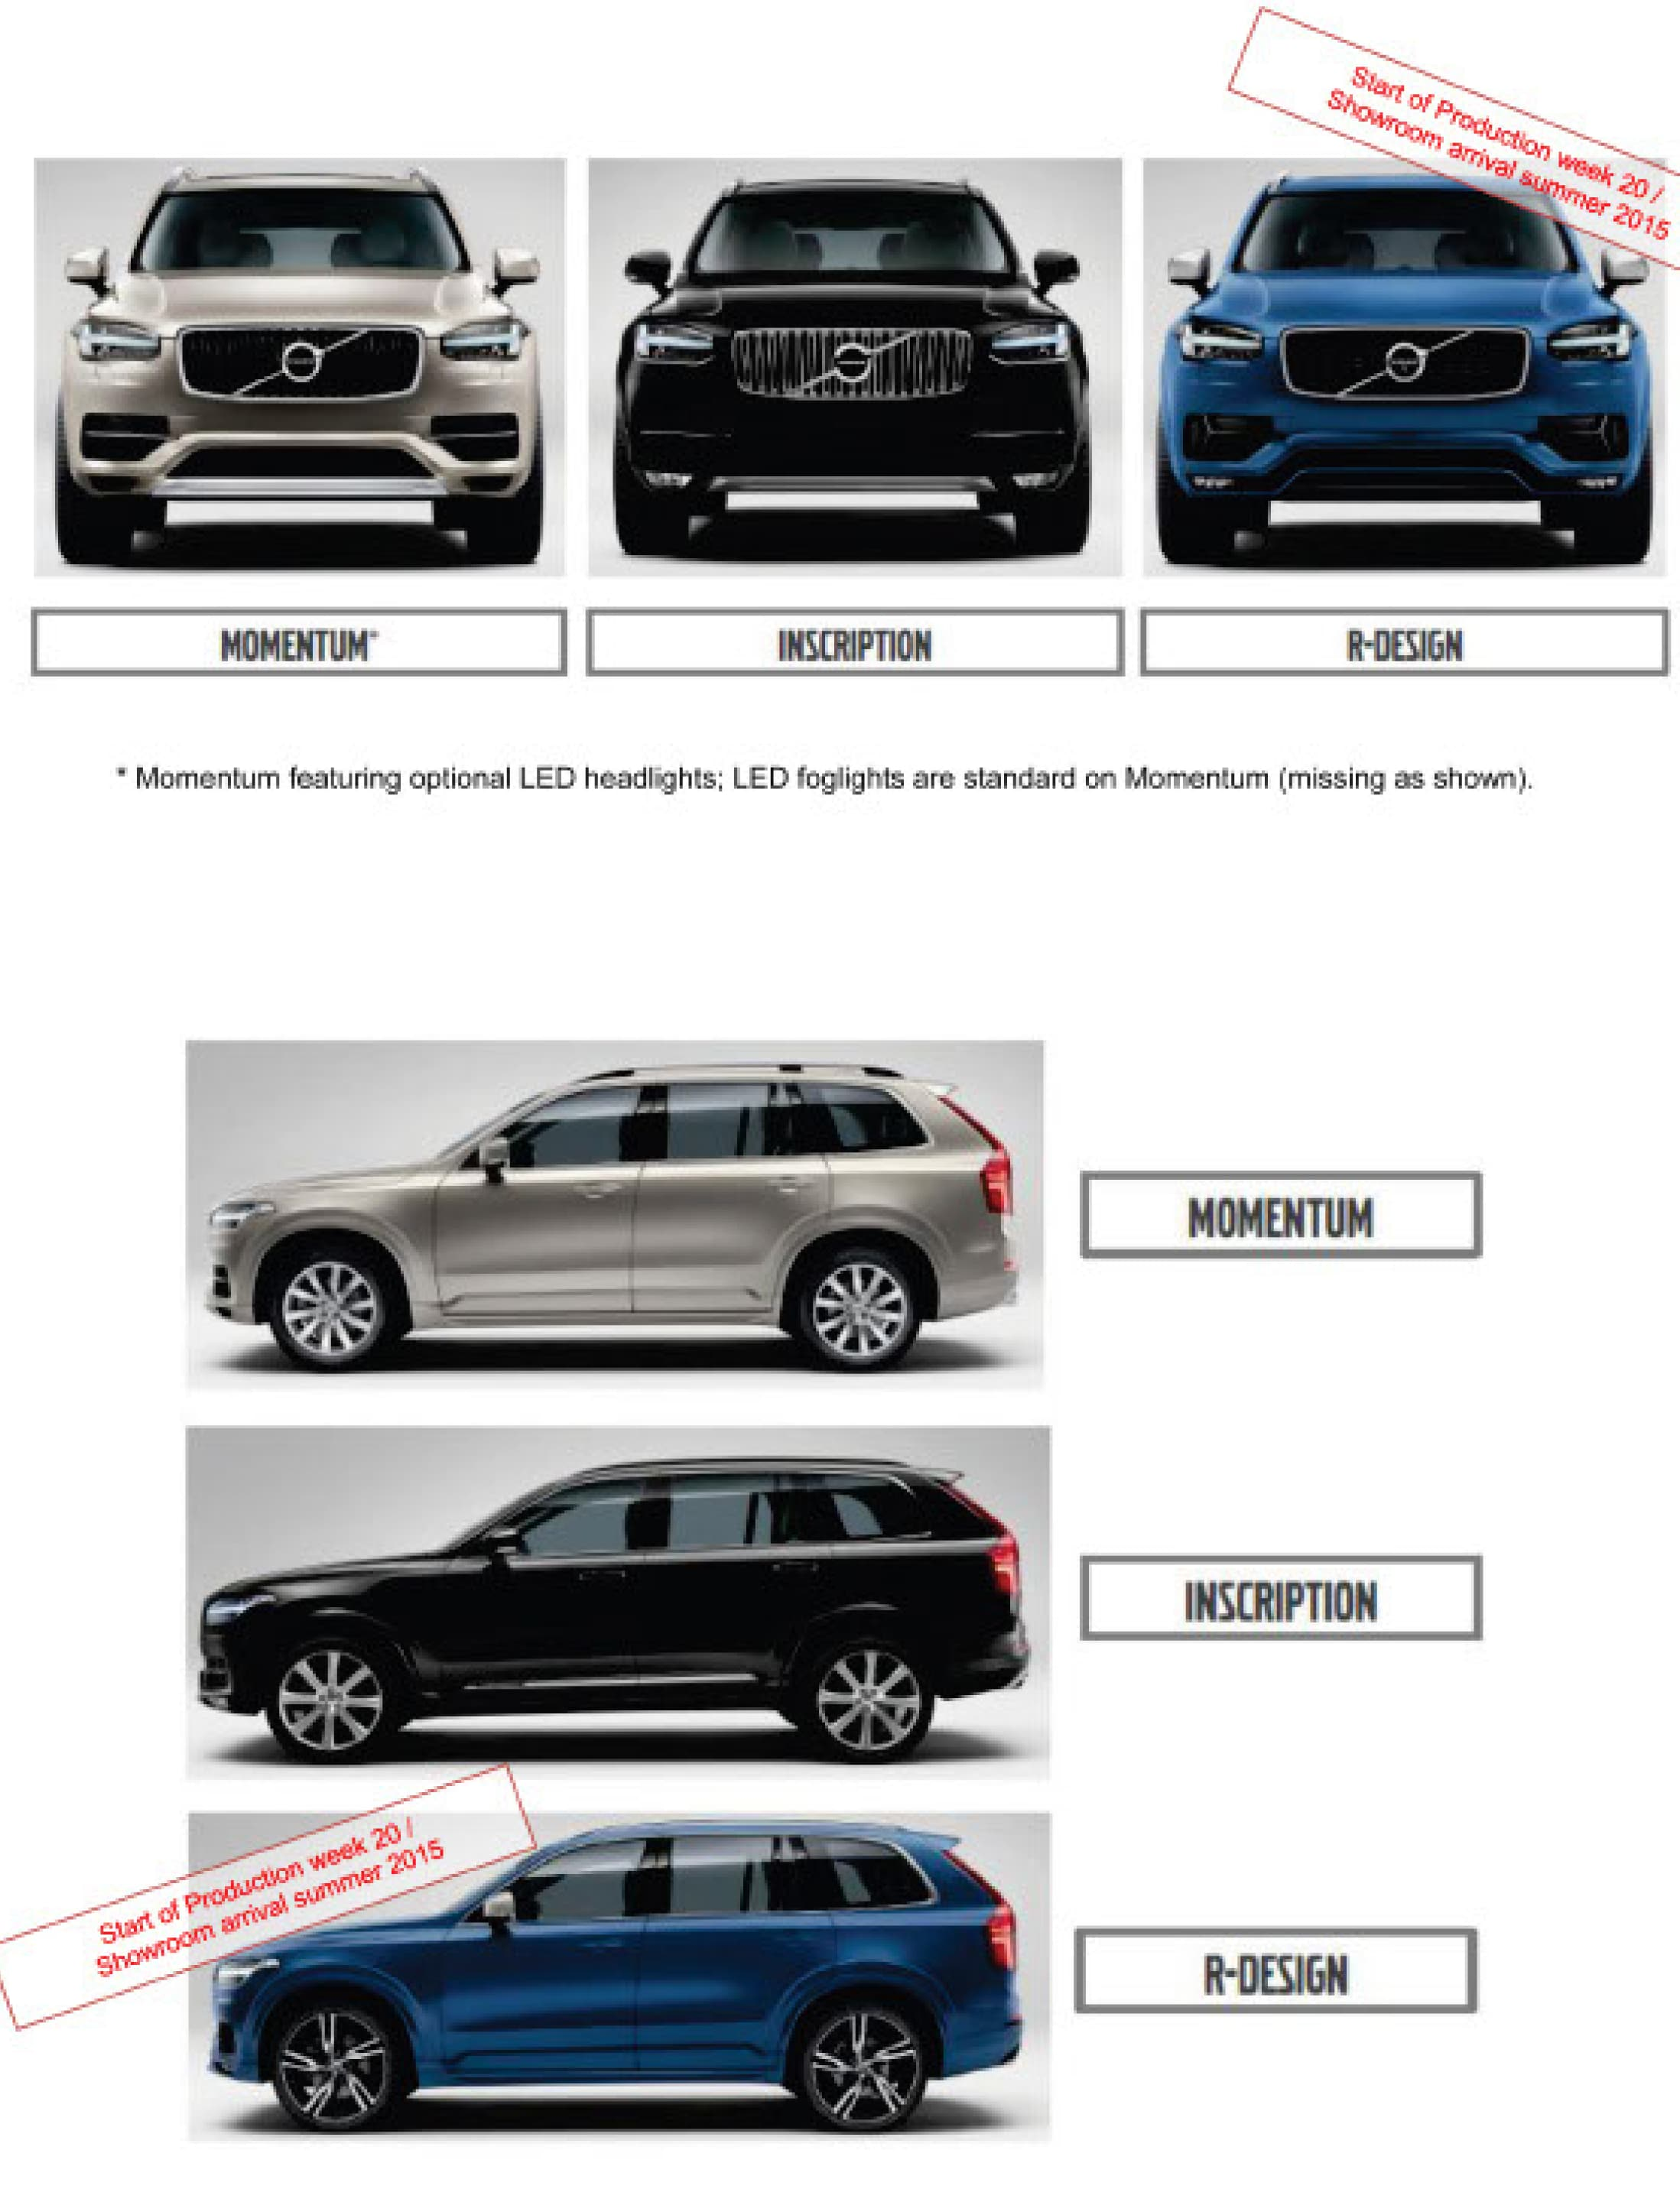 deals nj dealership cars this line up past new htm of edison models volvo in lease historical present estate